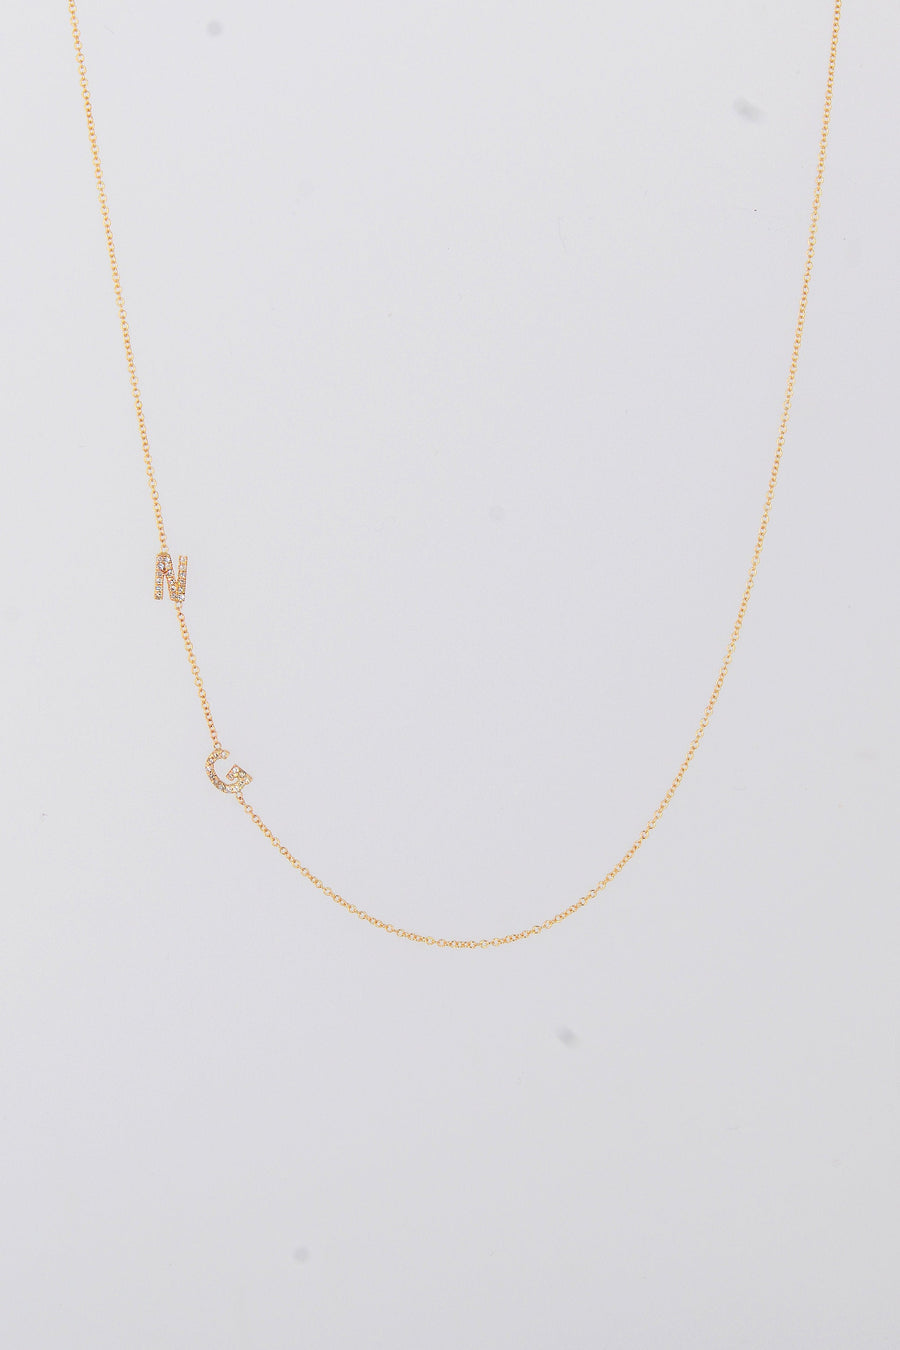 Asymmetrical Initials Necklace